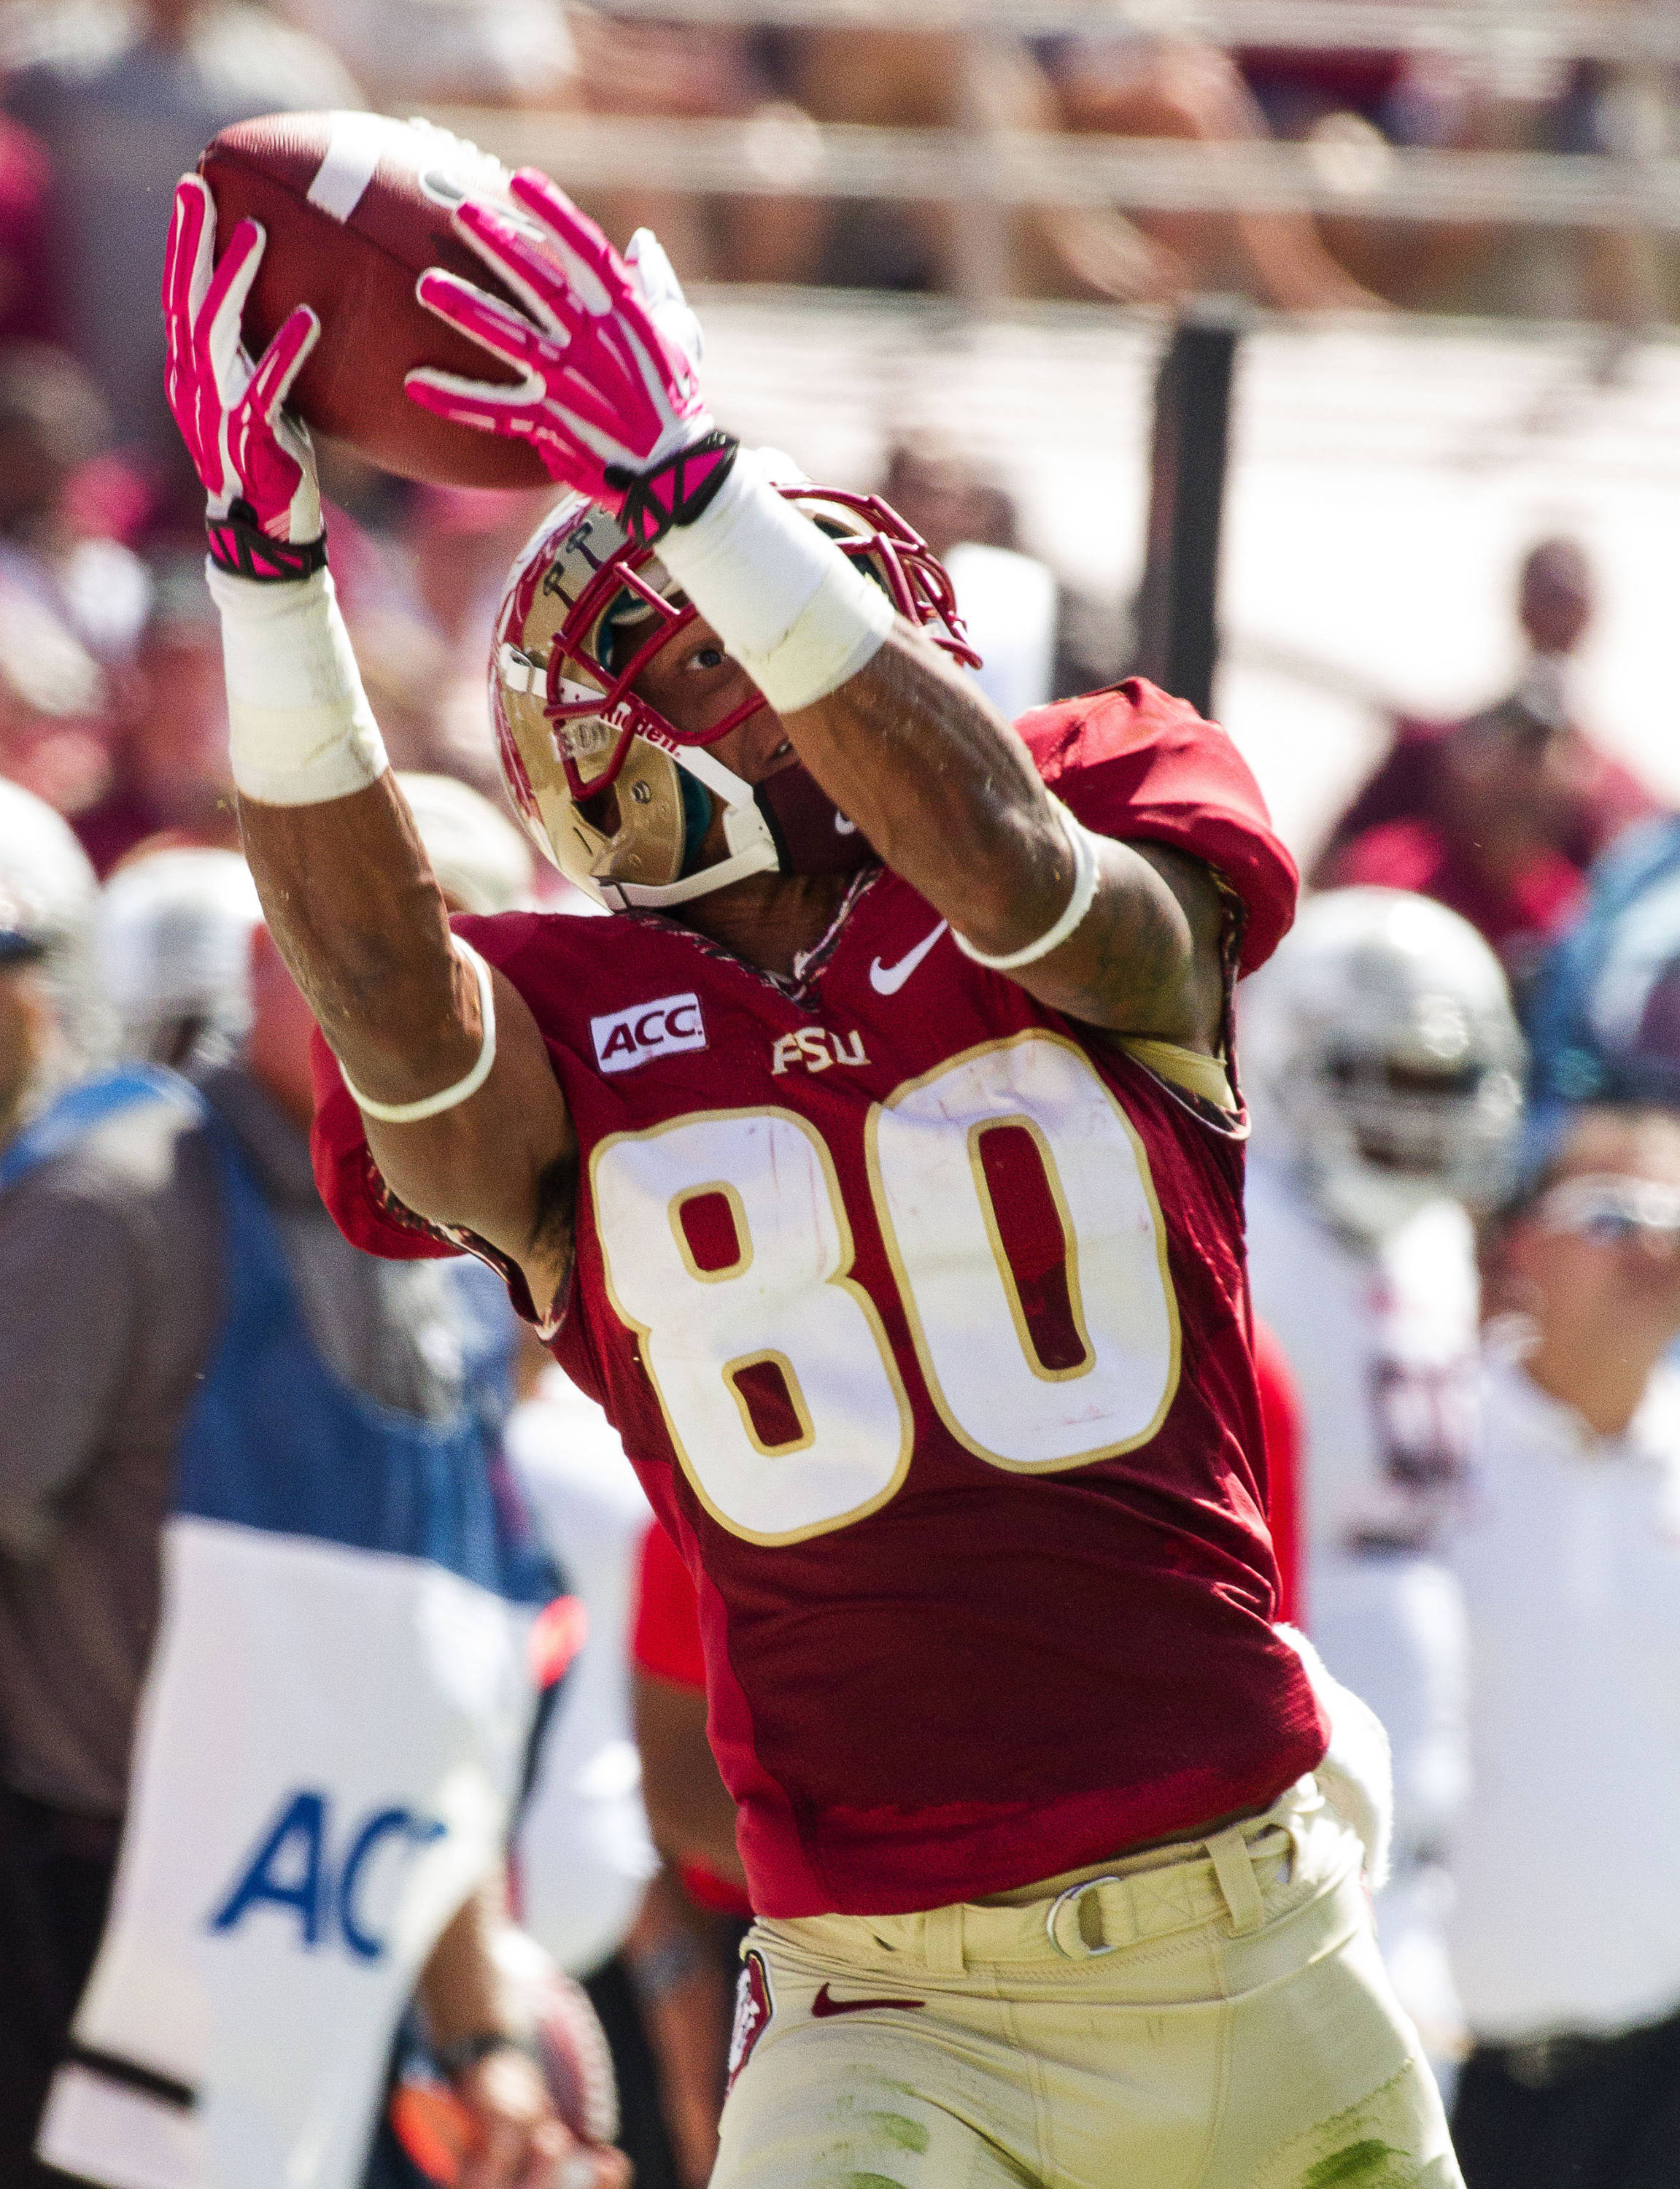 Rashad Greene (80) attempts to make a catch as he runs down the sideline during FSU Football's 63-0 shutout of Maryland on Saturday, October 5, 2013 in Tallahassee, Fla.